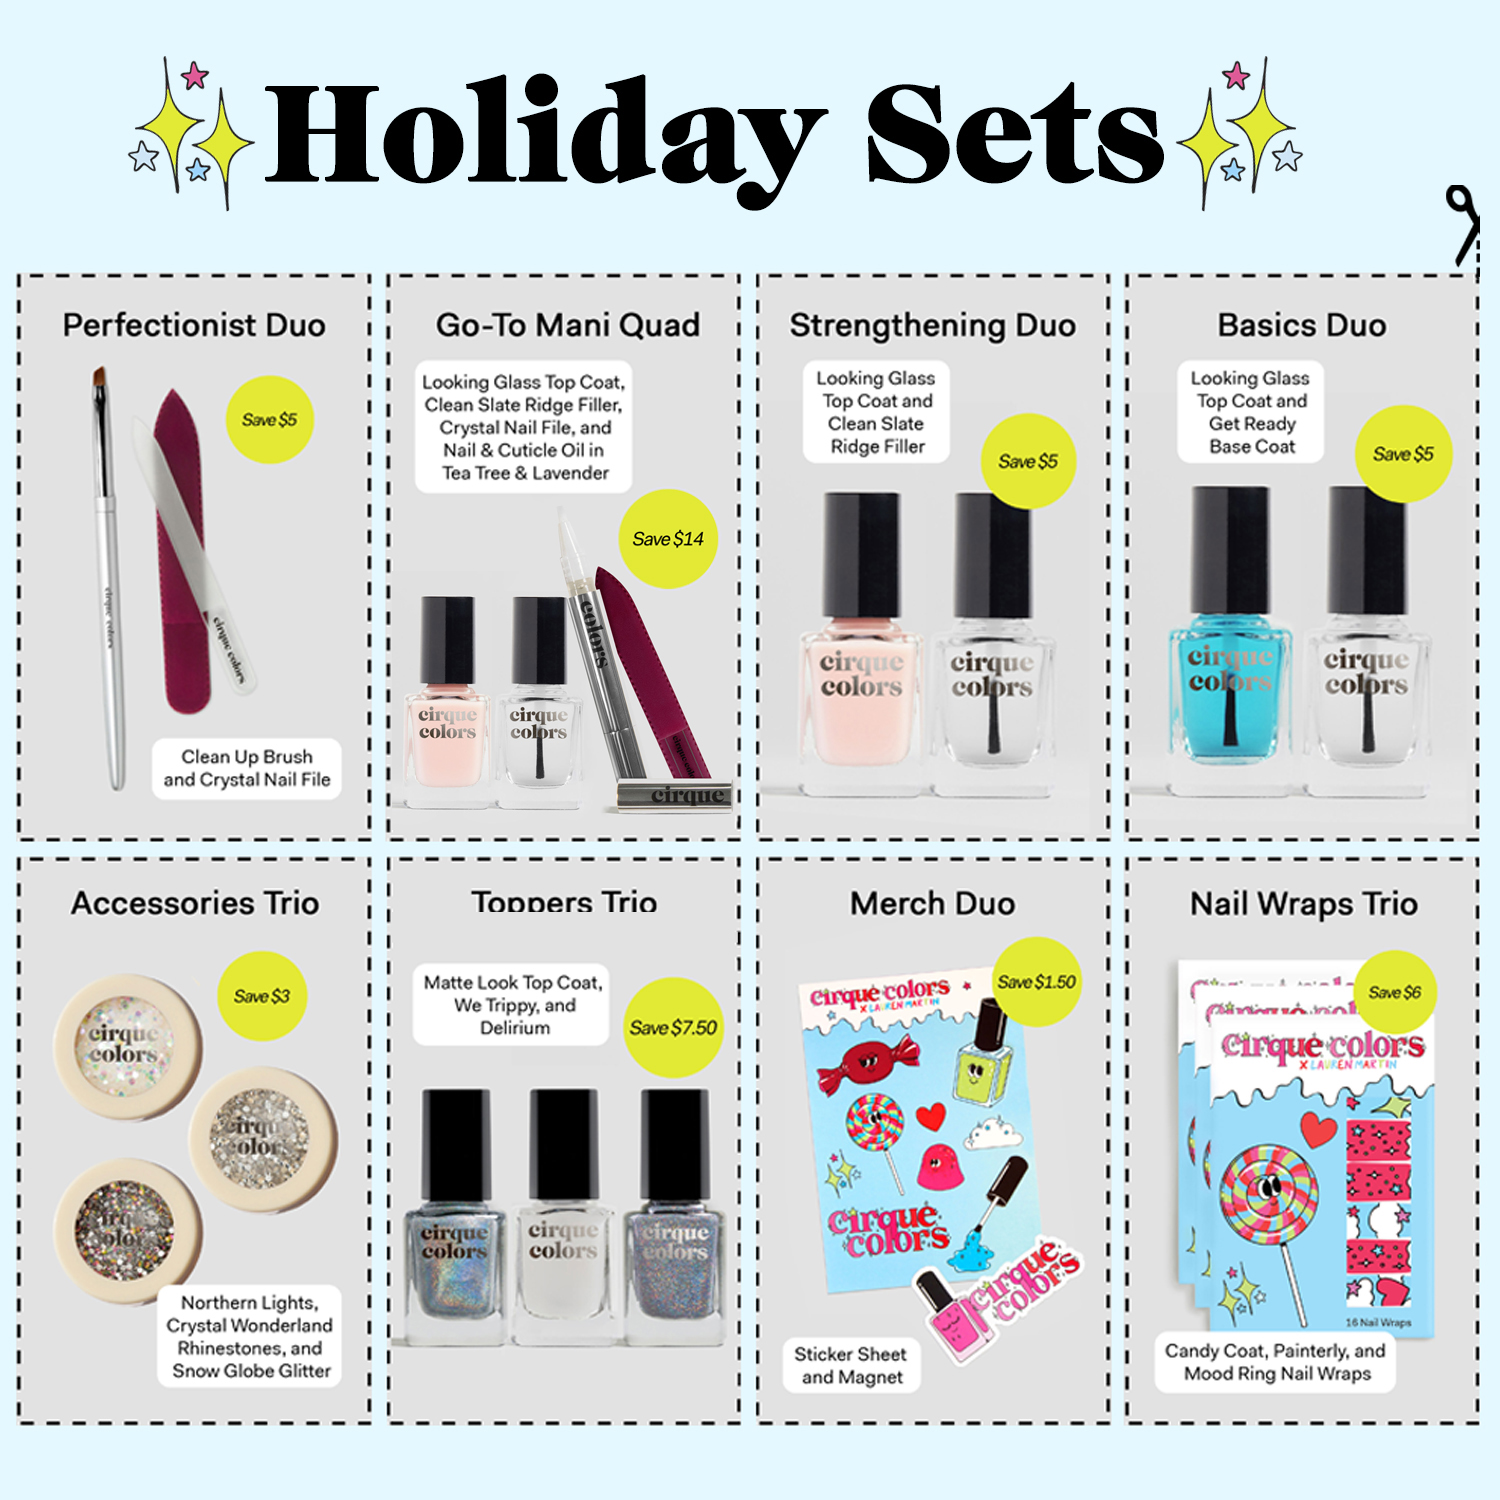 Holiday Sets